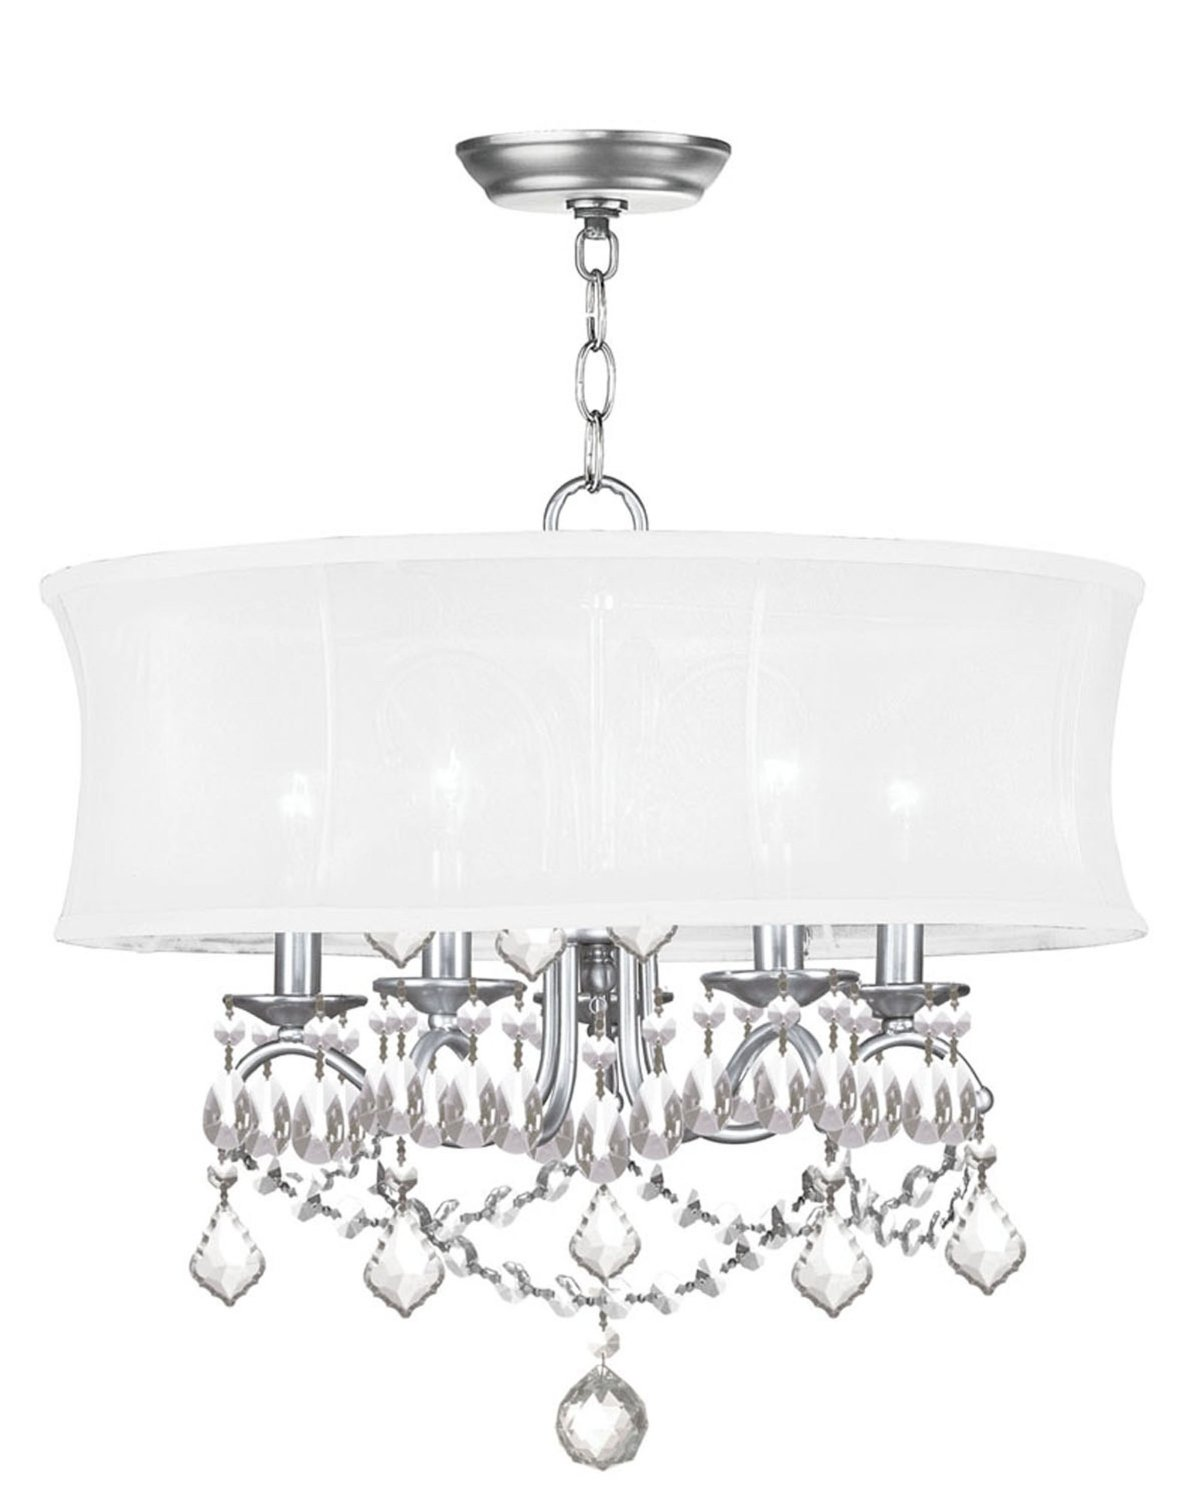 Lovely Livex Lighting 6305 91 Newcastle Brushed Nickel Chandelier For Home Lighting Ideas